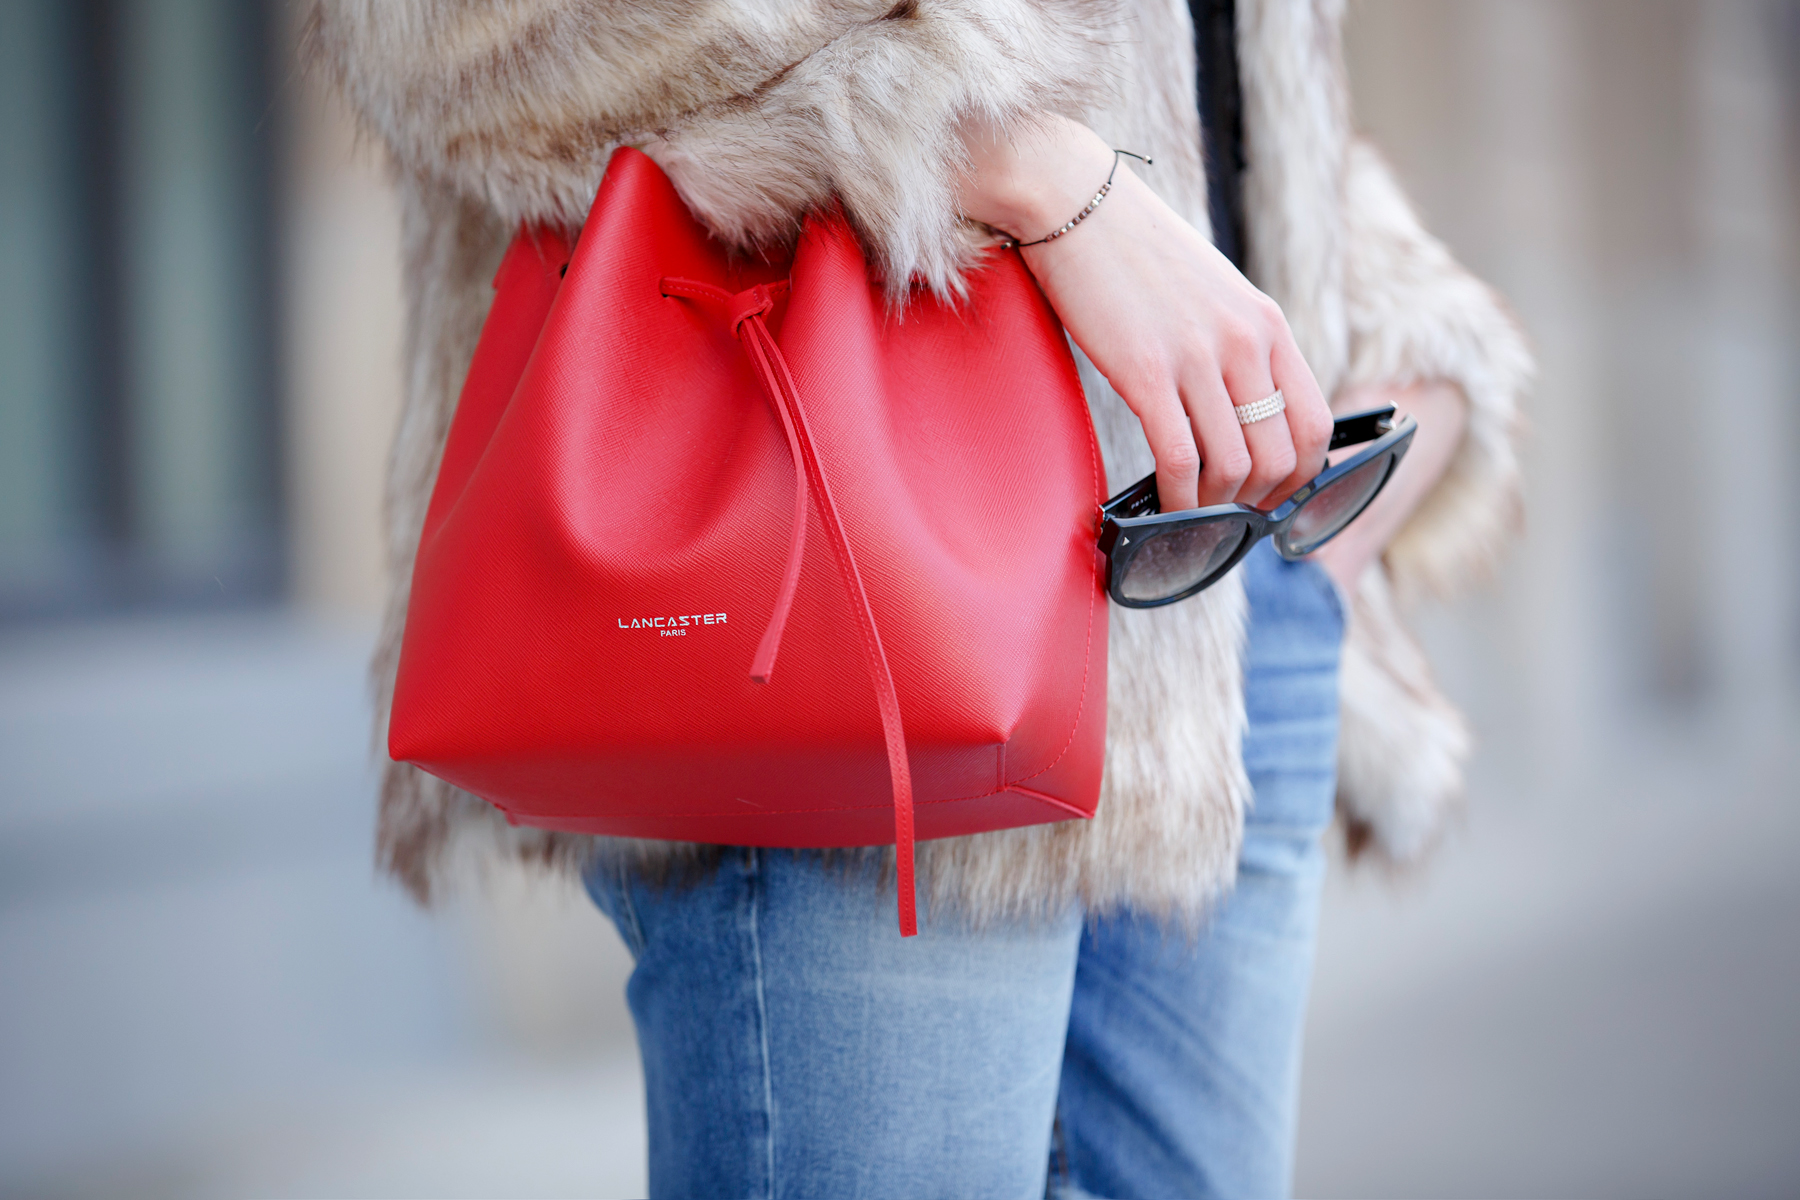 lancaster paris red bucket bag mansur gavriel lookalike patch boyfriend jeans mango fake fur coat asos black sacha booties ankle boots chloe suzanna prada sunglasses luxury style blogger cats & dogs blog ricarda schernus 2